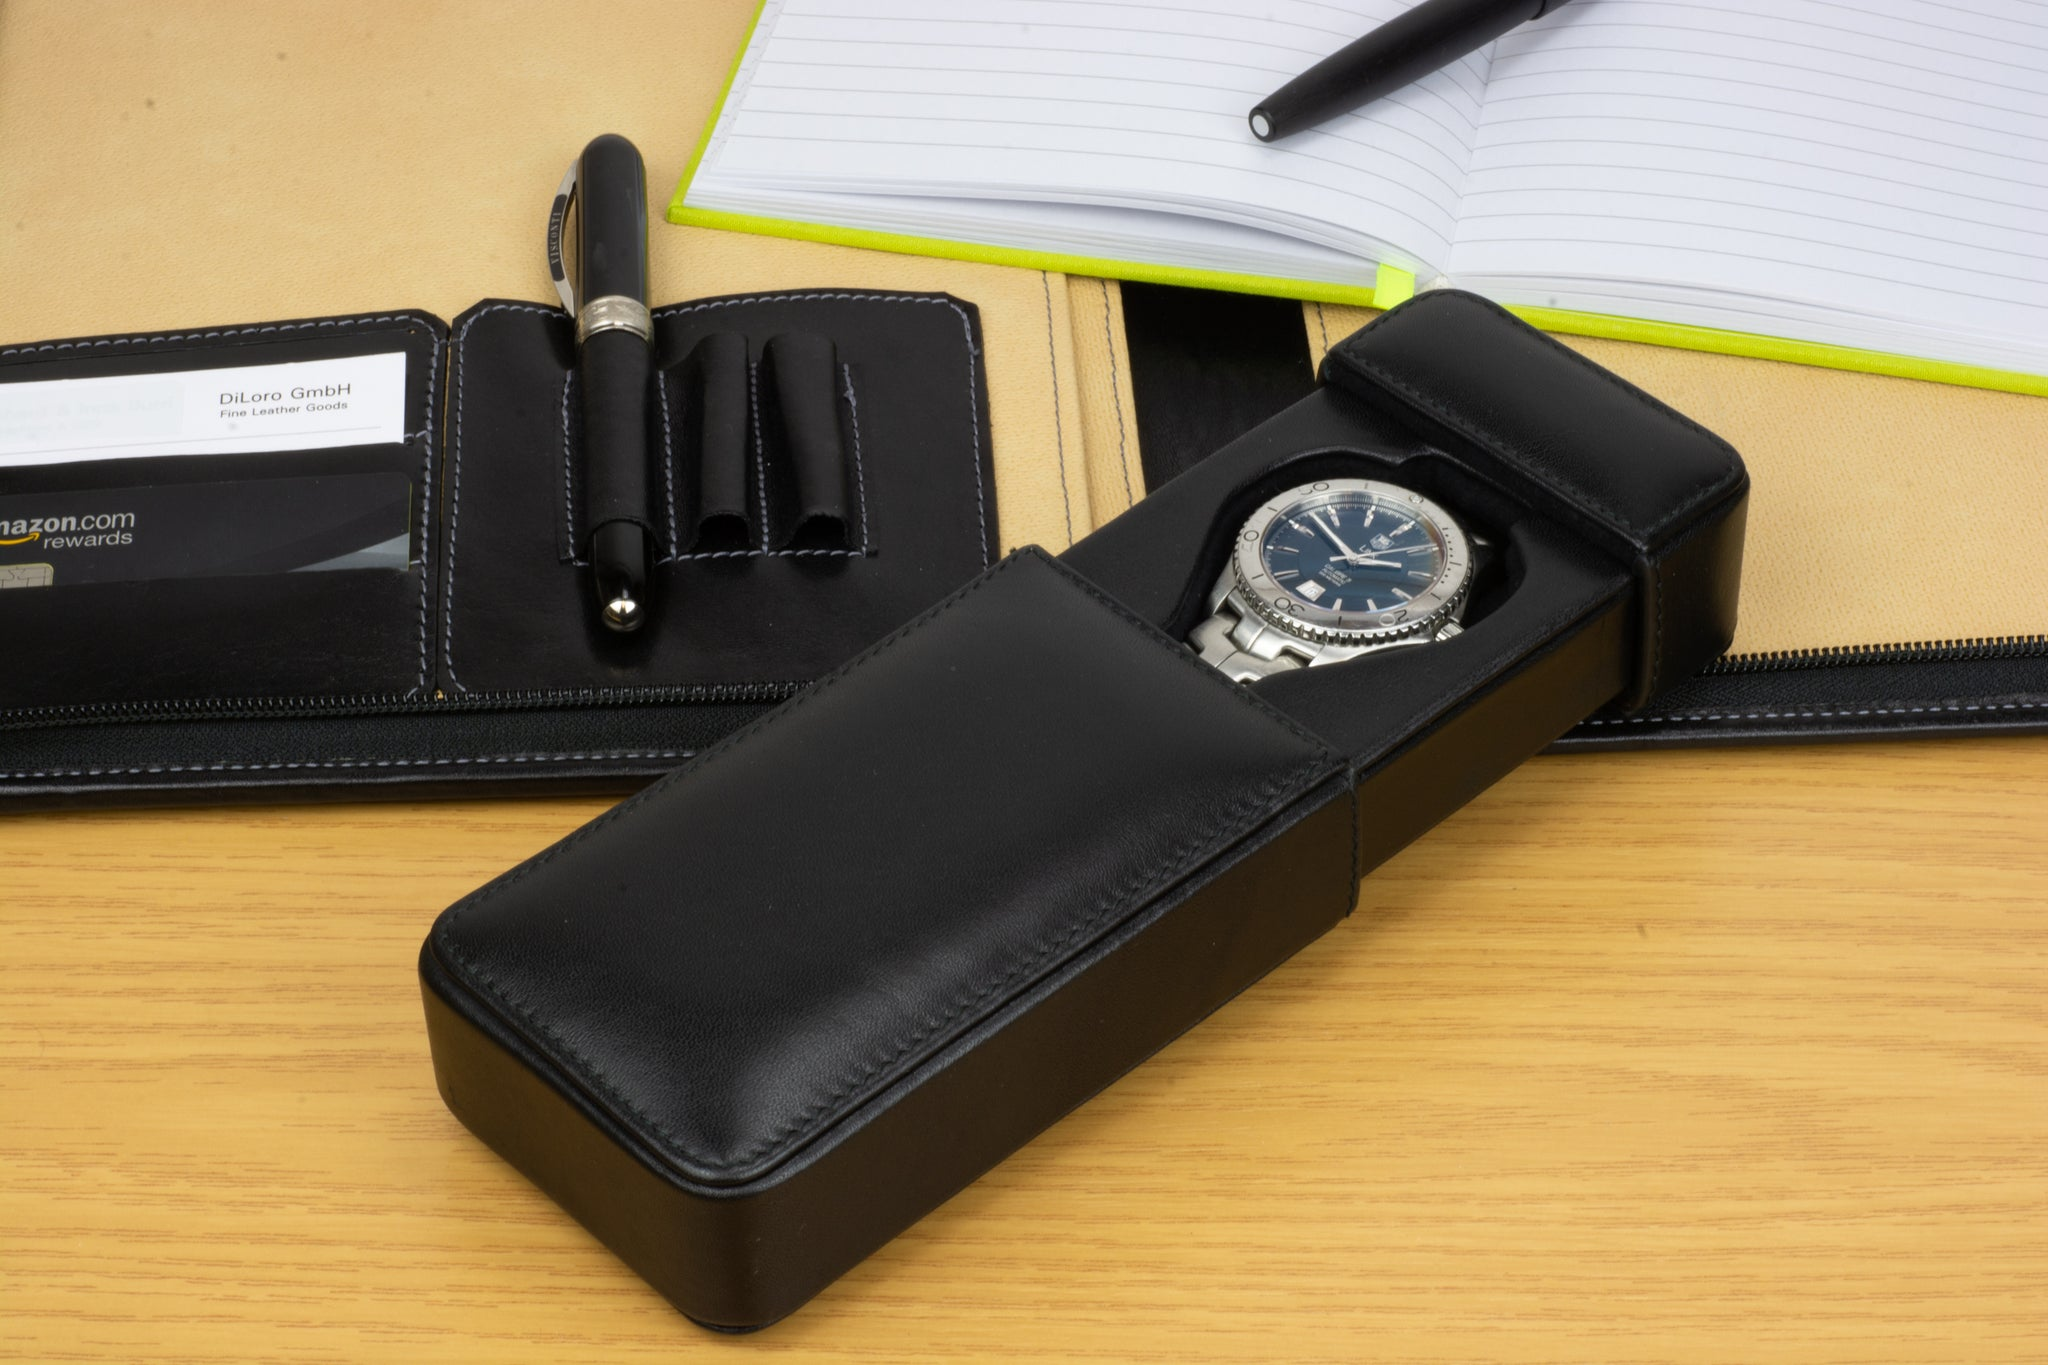 DiLoro Italian Leather Single Travel Watch Case Holder in Black Made in Italy with DiLoro Italy Portfolio (pen and watch not included)